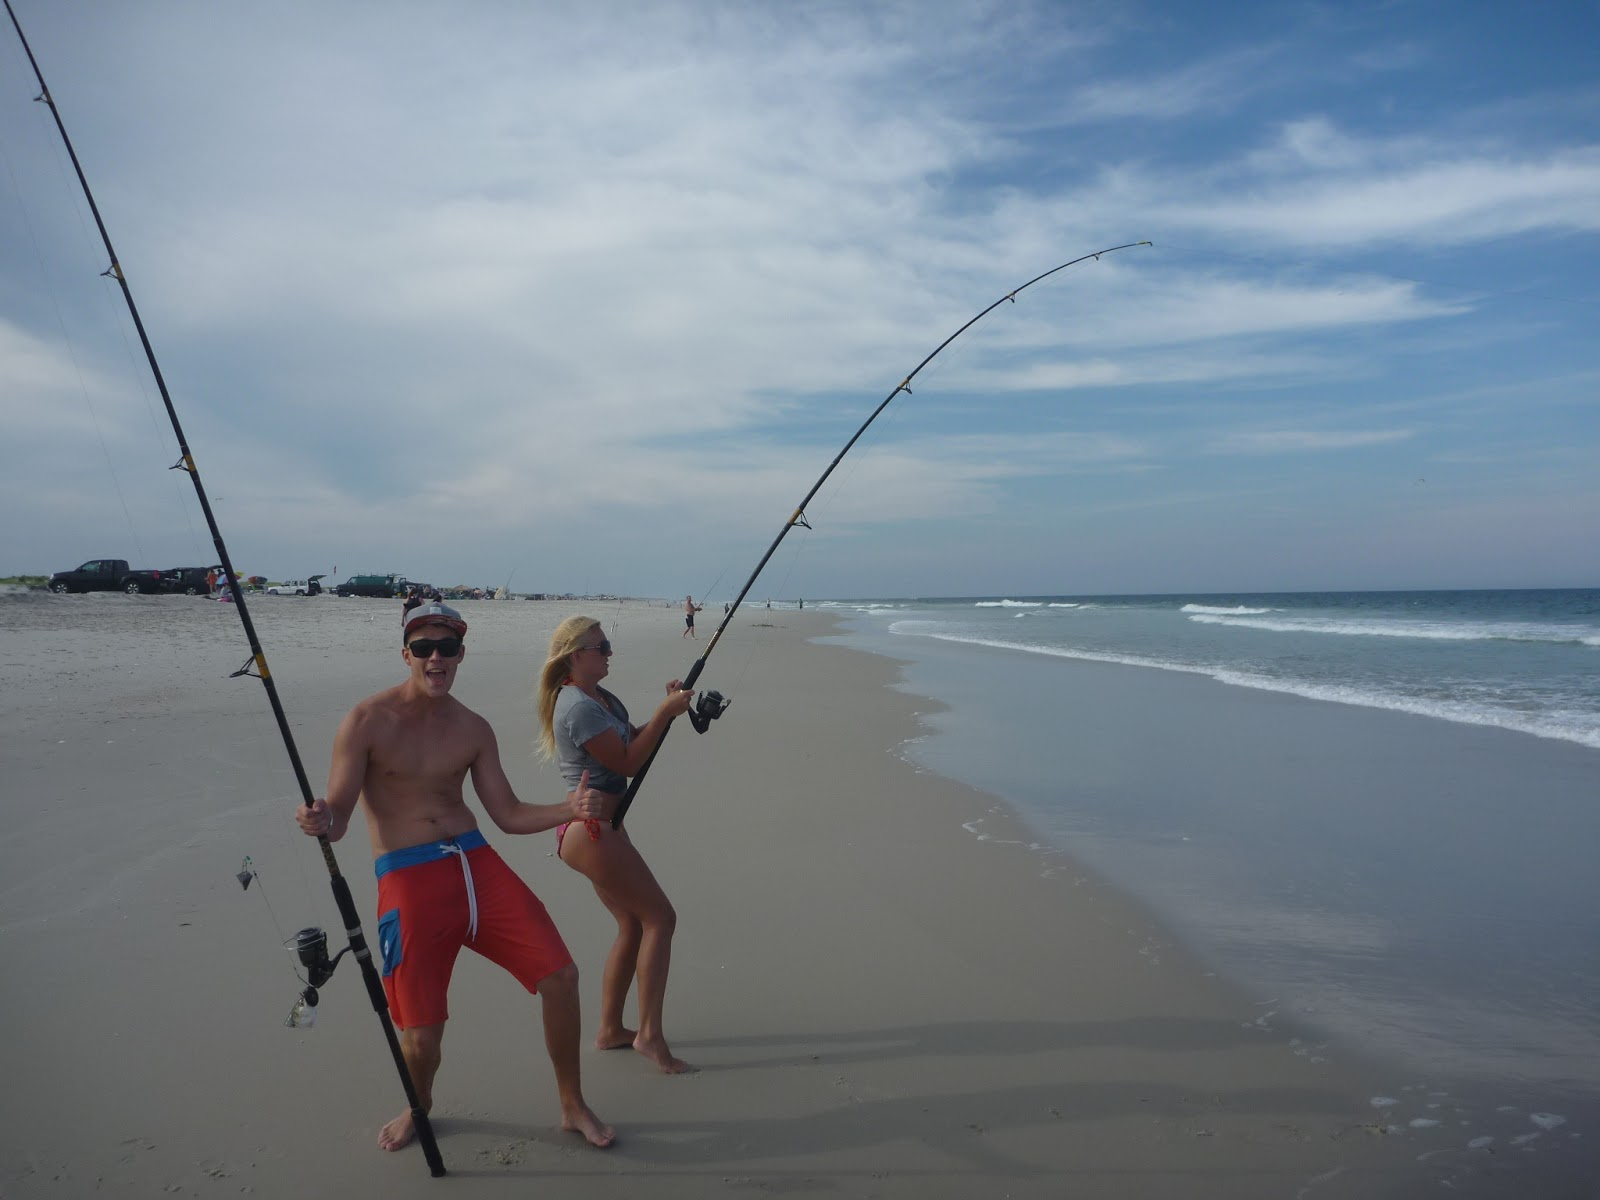 Pin rigs of rods0 38 mods httpwwwtatra clubcomvideo for Shark fishing gear for beach